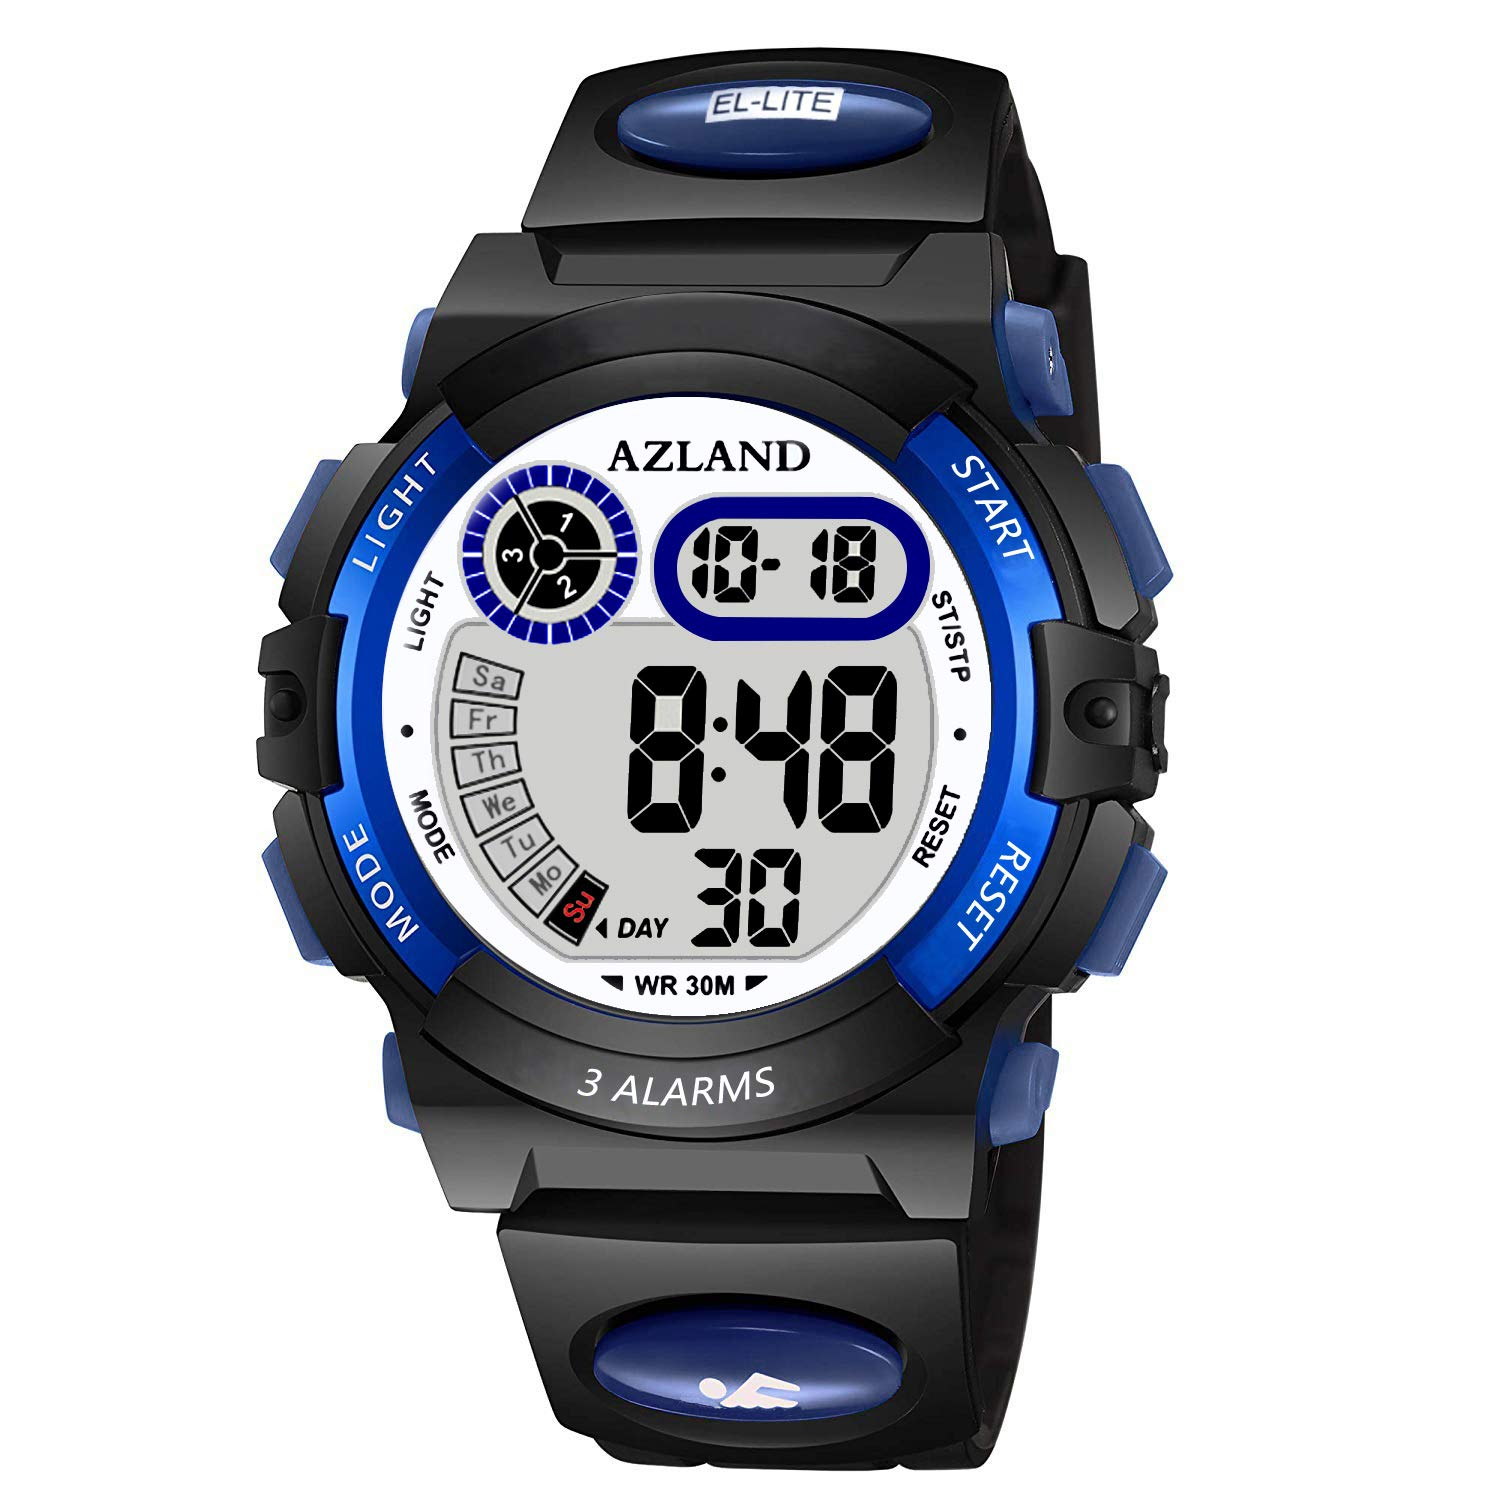 AZLAND Boys Girls Watches Digital Sports Watch Features Night-Light,Swim,Frozen,Waterproof Kids Watch, Blue by AZLAND